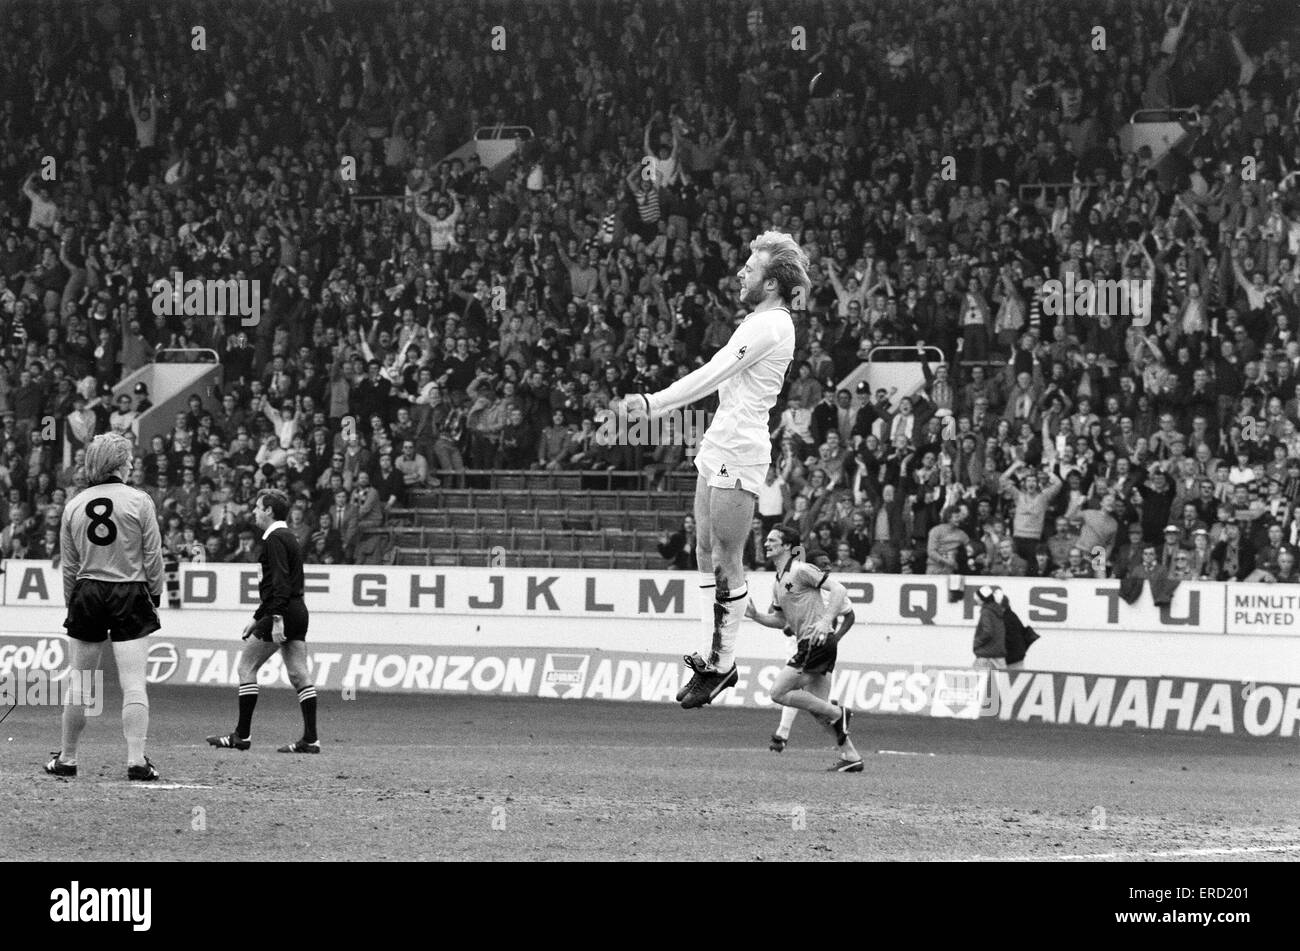 Spurs V Wolves FA Cup Semi Final Played At Hillsborough Steve Archibald Jumps In Celebration After Scoring A Goal For 11th April 1981